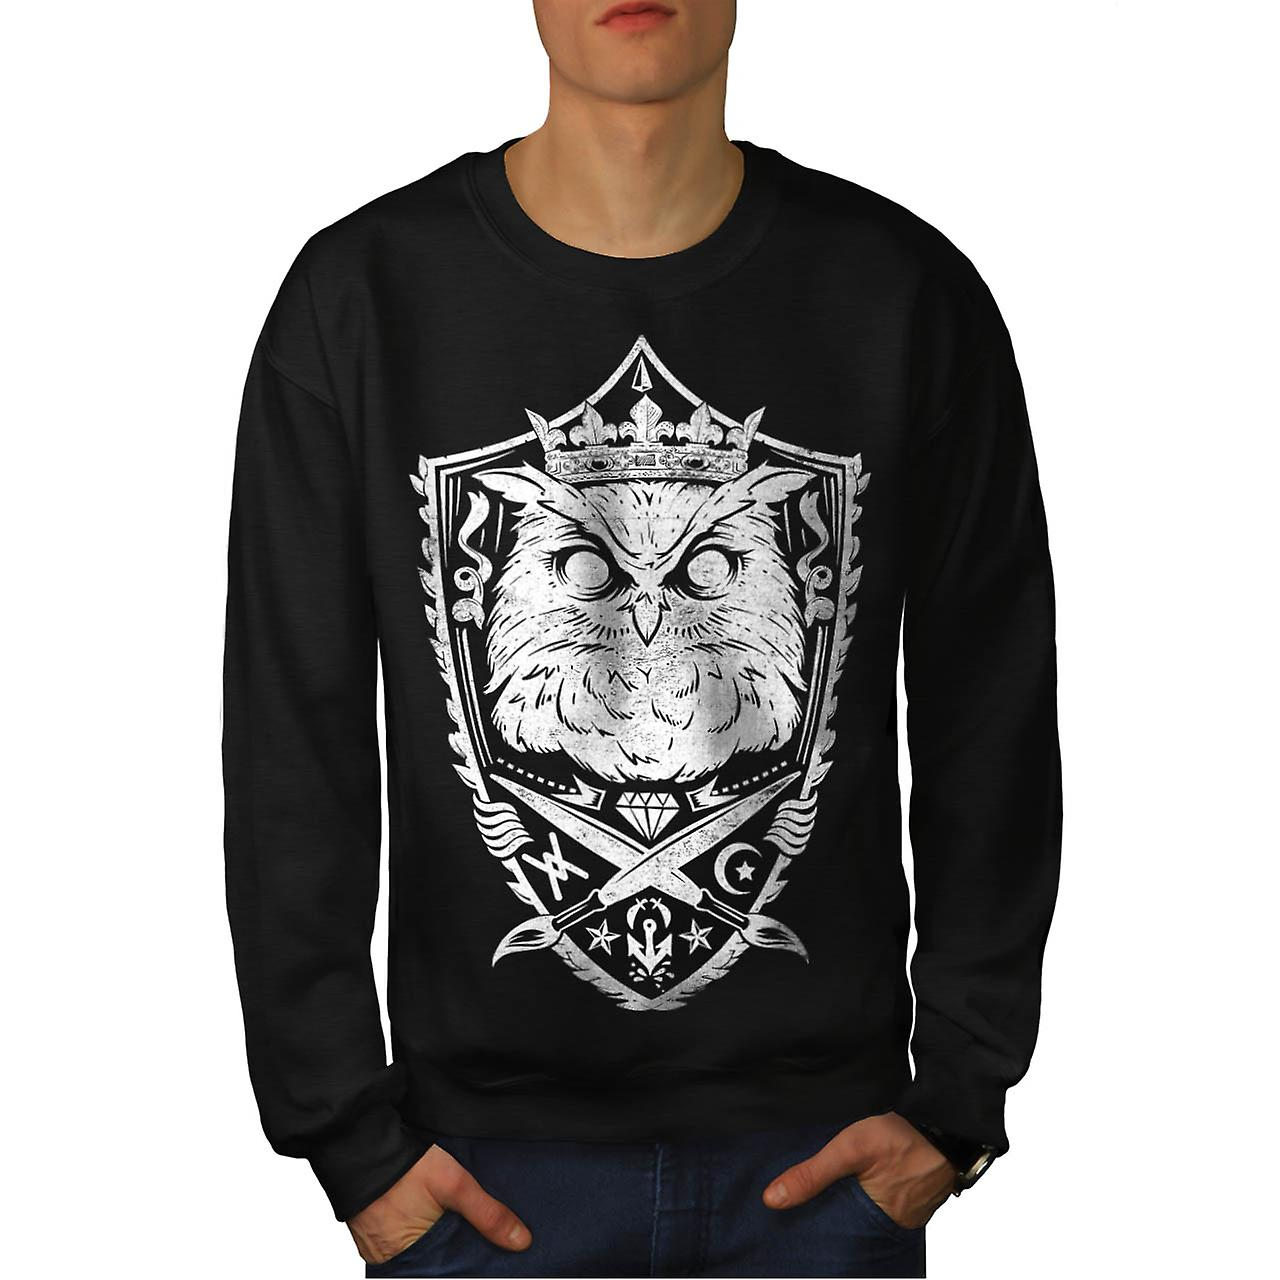 Danger Owl Kingdom Giant Bird Men Black Sweatshirt | Wellcoda